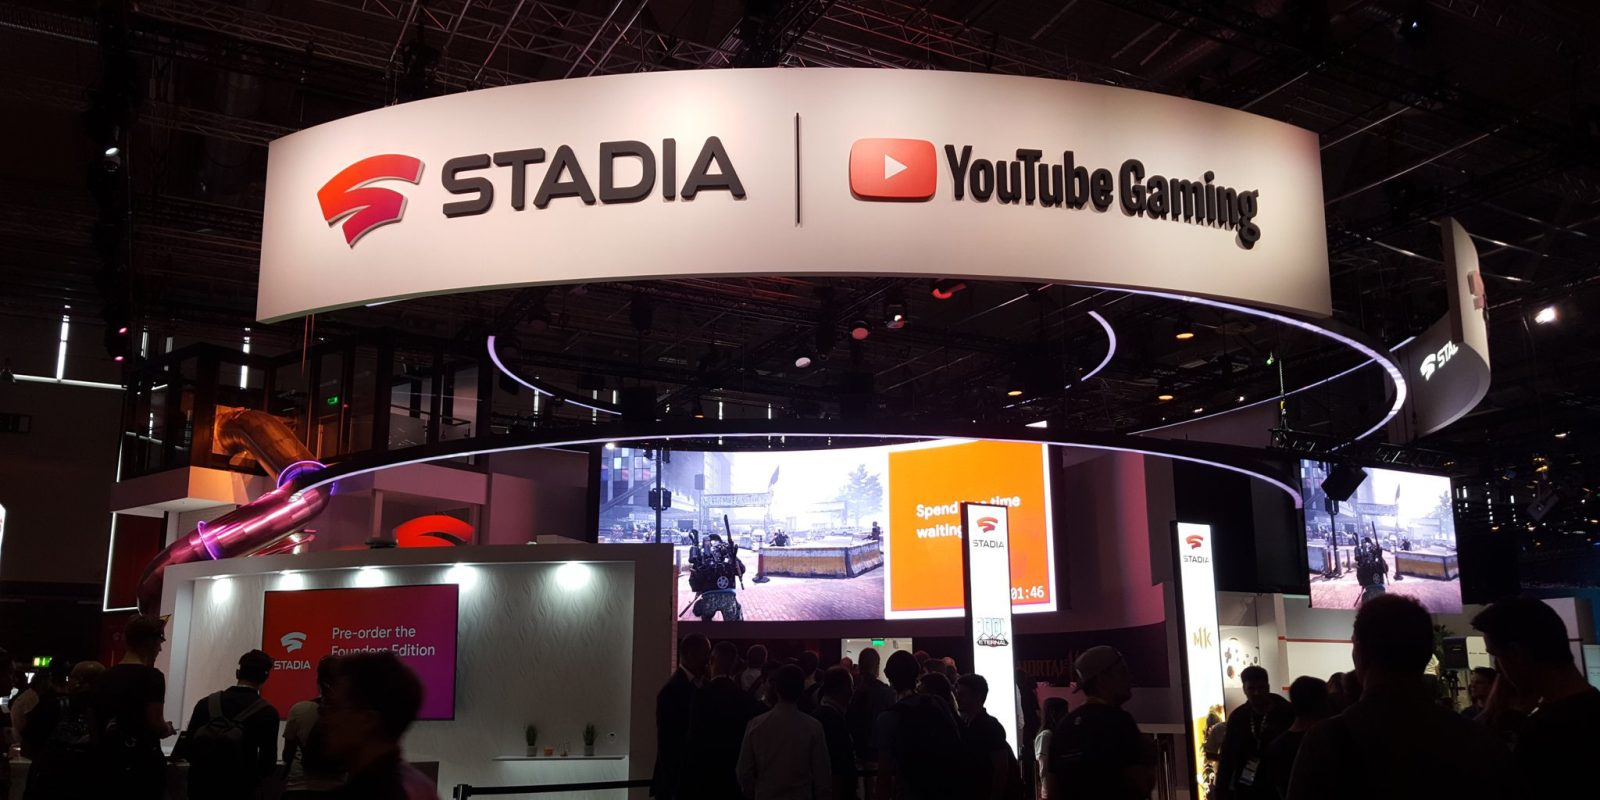 [Update: Video tour] Here's the Google Stadia booth at Gamescom and yes, it has a slide